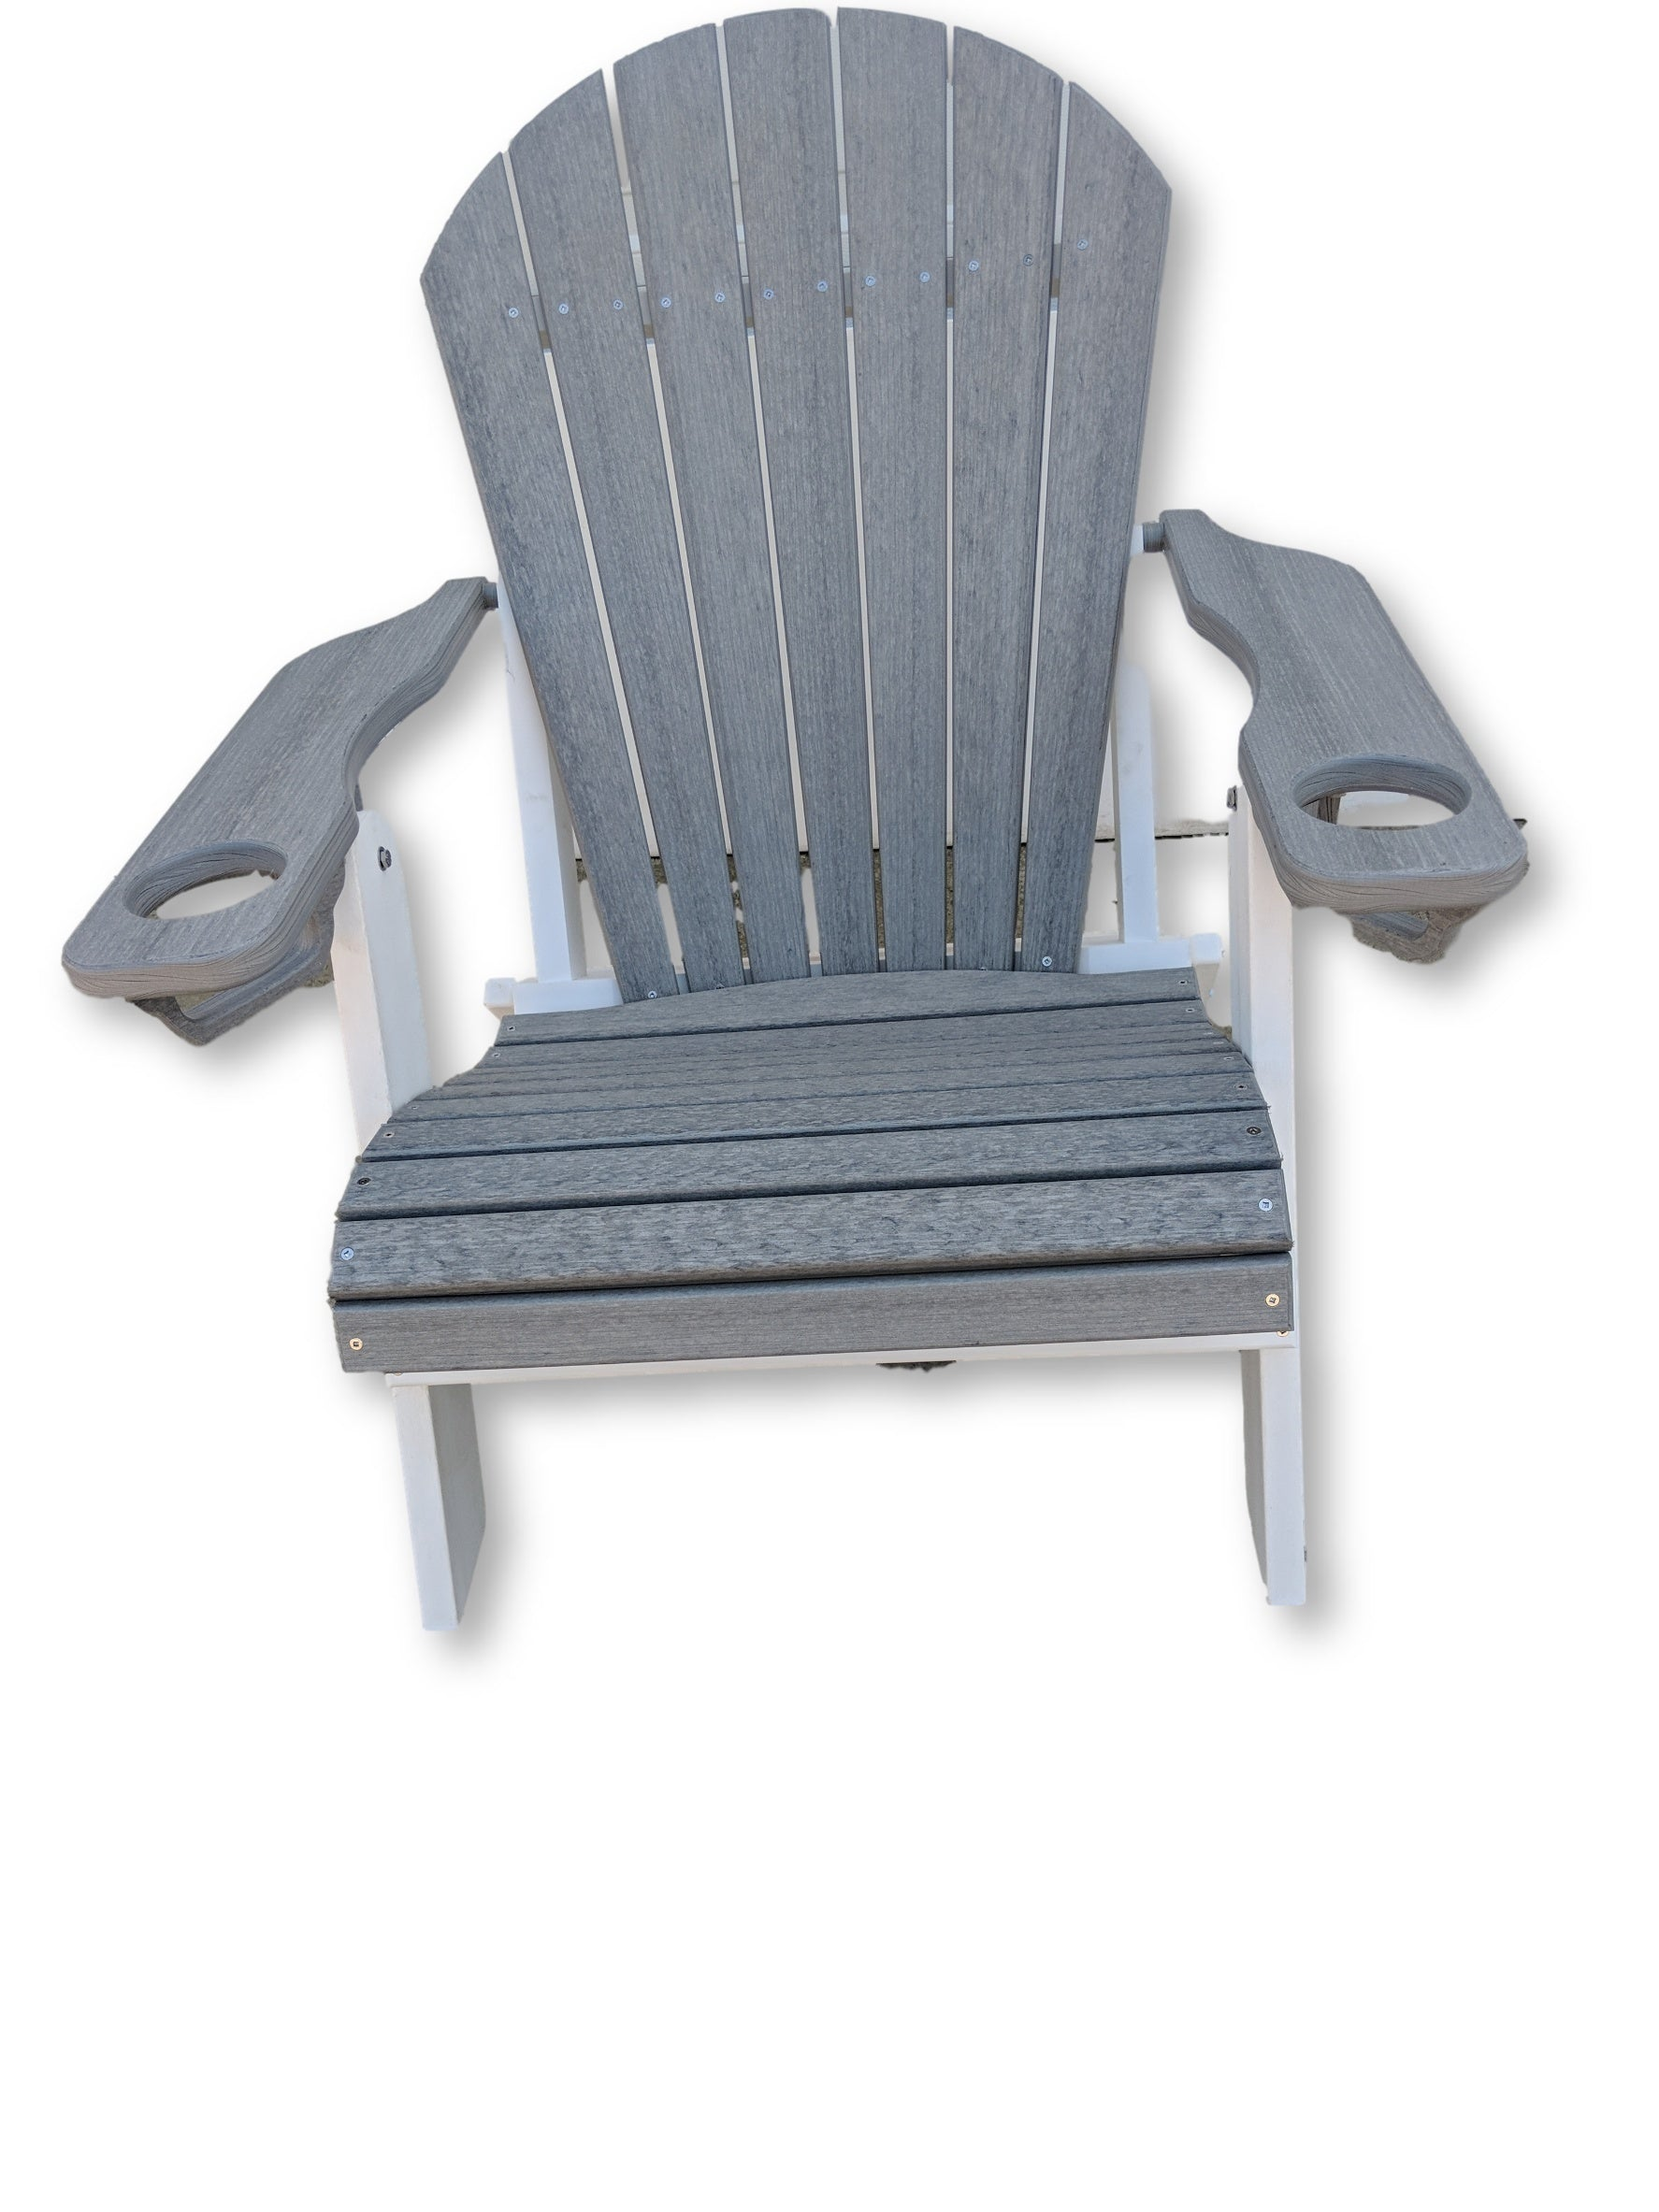 Driftwood White Folding Adirondack Chair with Cup Holders